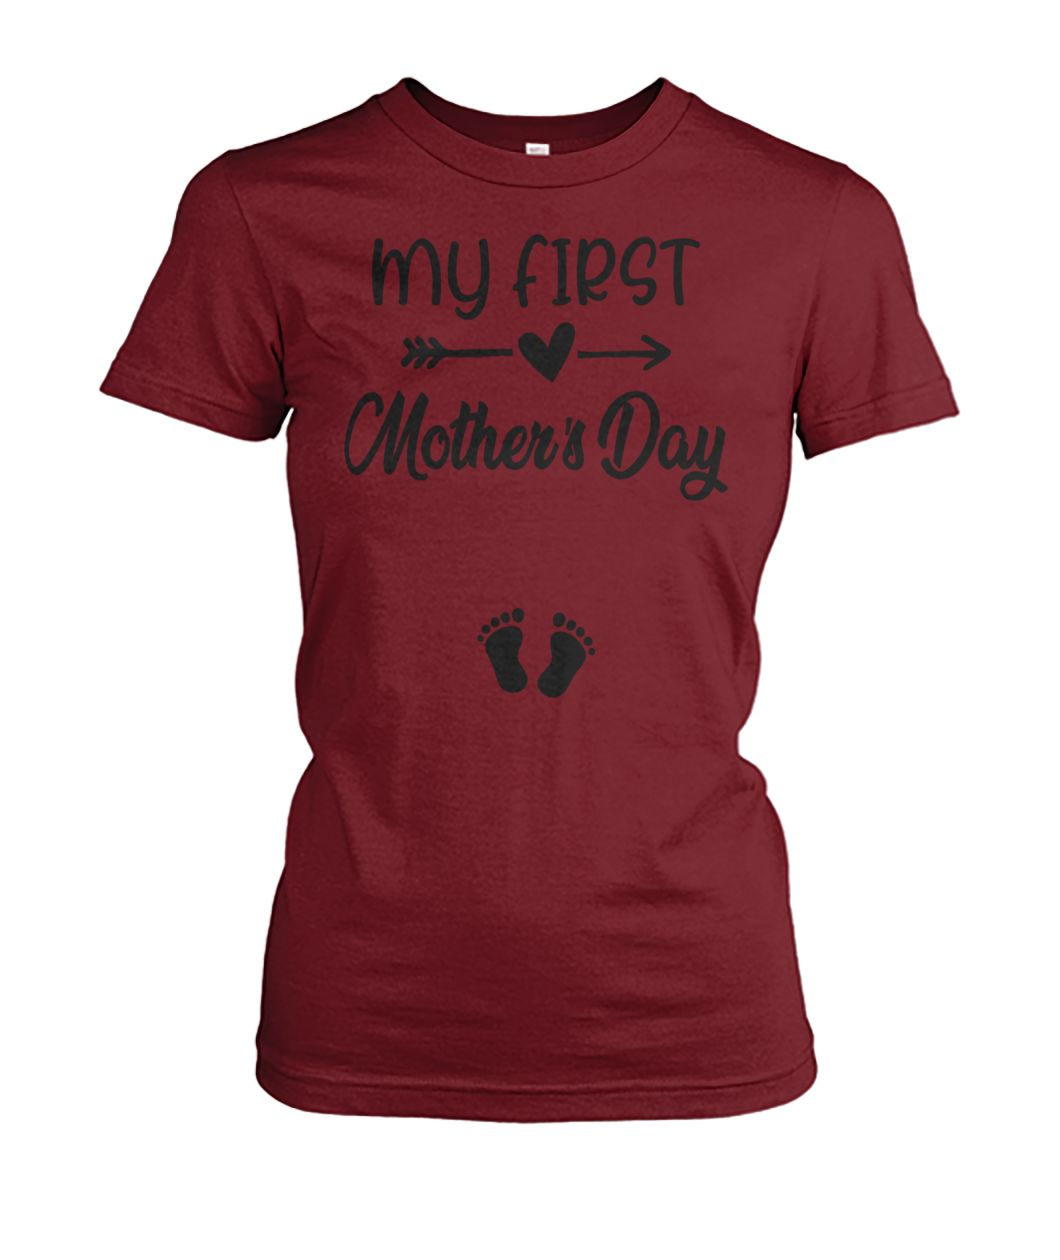 eeab33ab2a945 Where to buy: My first mother's day pregnancy announcement shirt